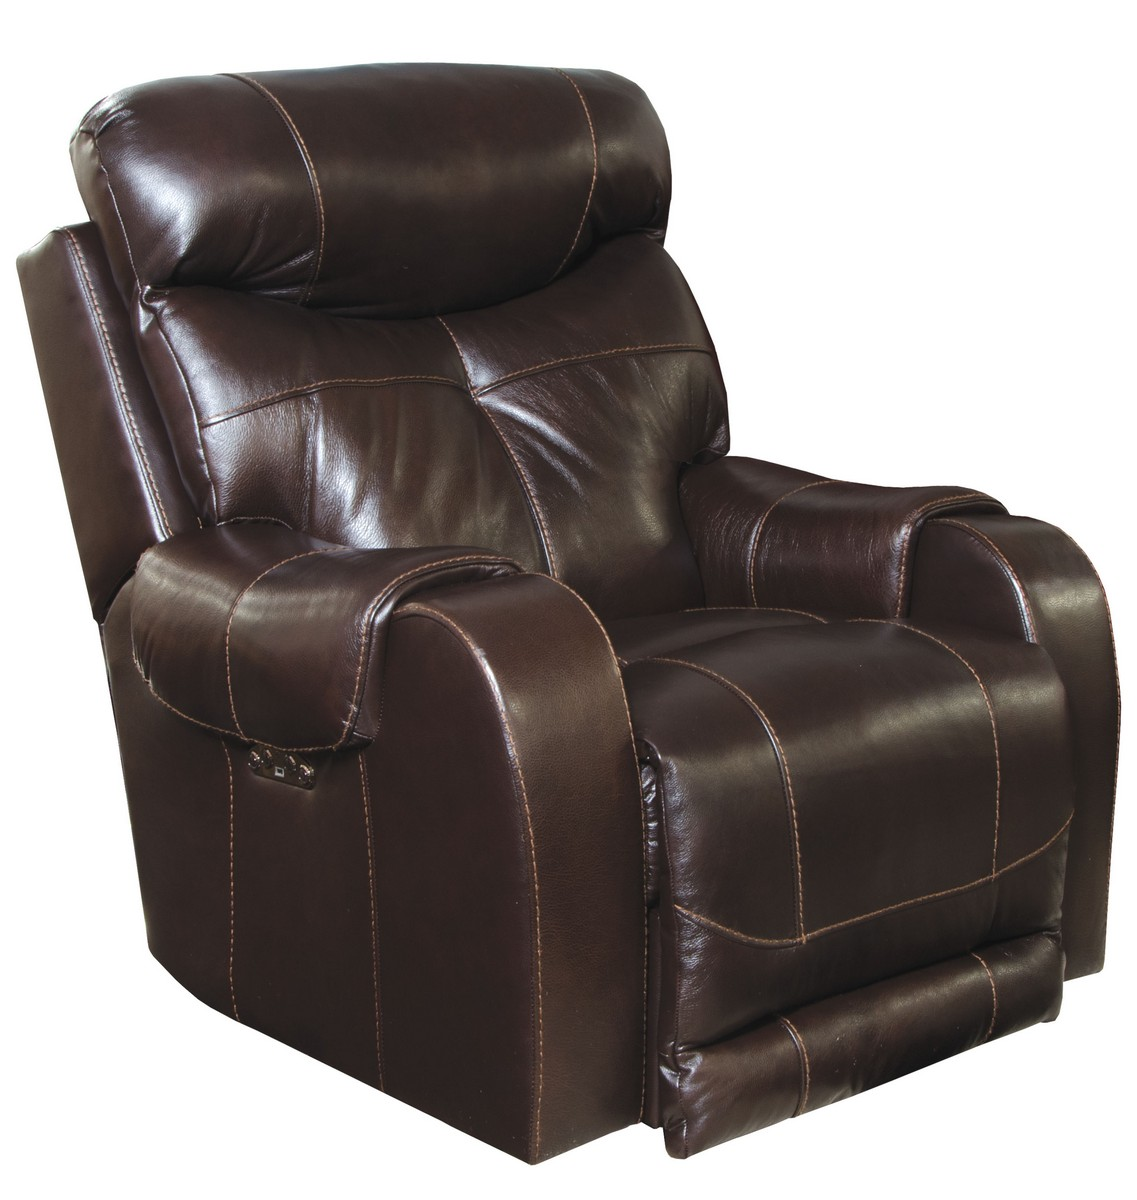 CatNapper Venice Top Grain Leather Touch Power Headrest Power Lumbar Power Lay Flat Recliner - Chocolate